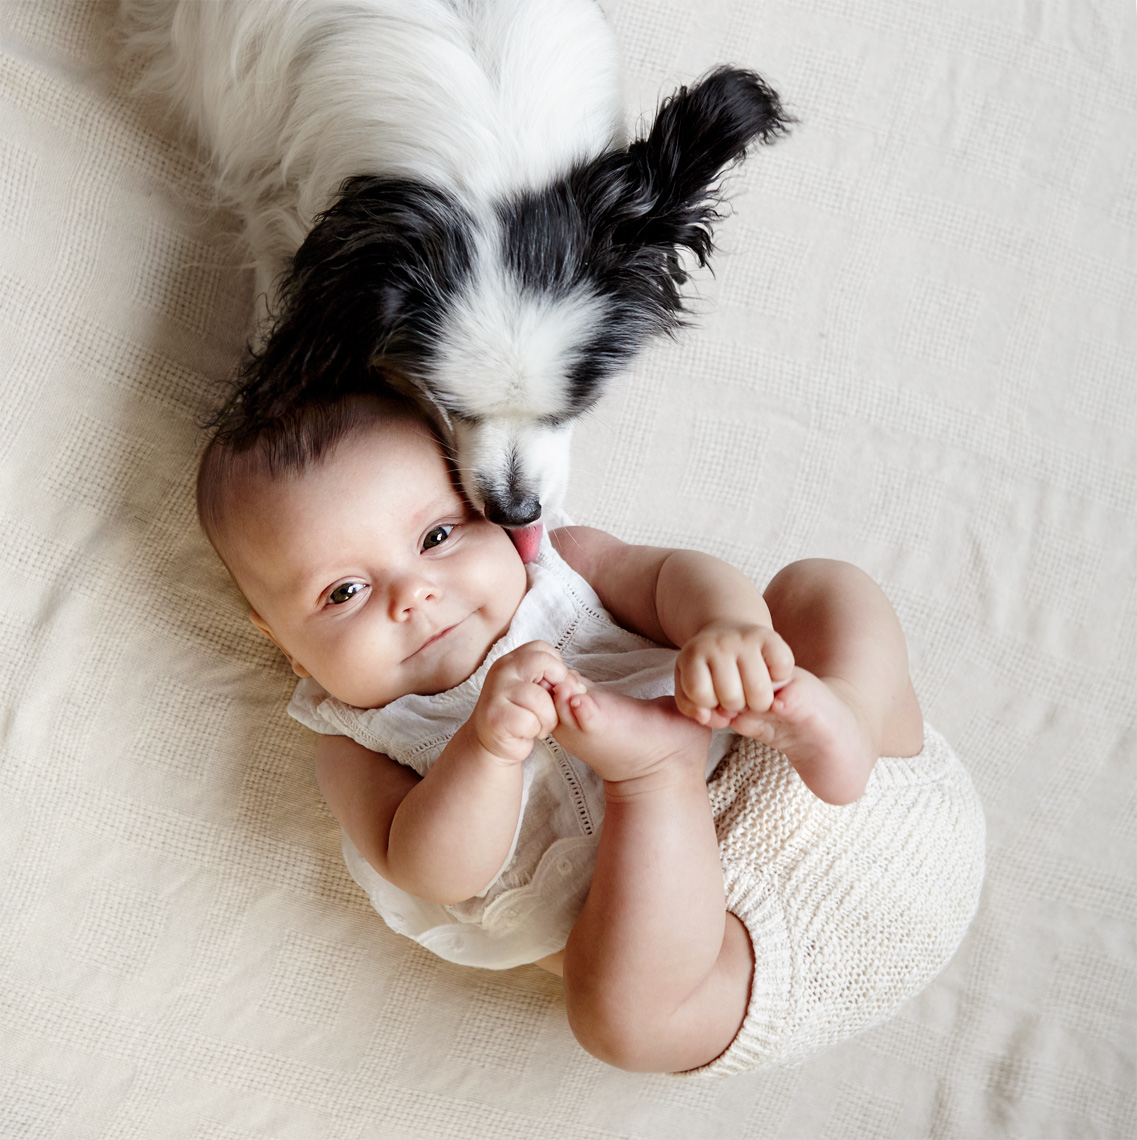 Papillon licking baby